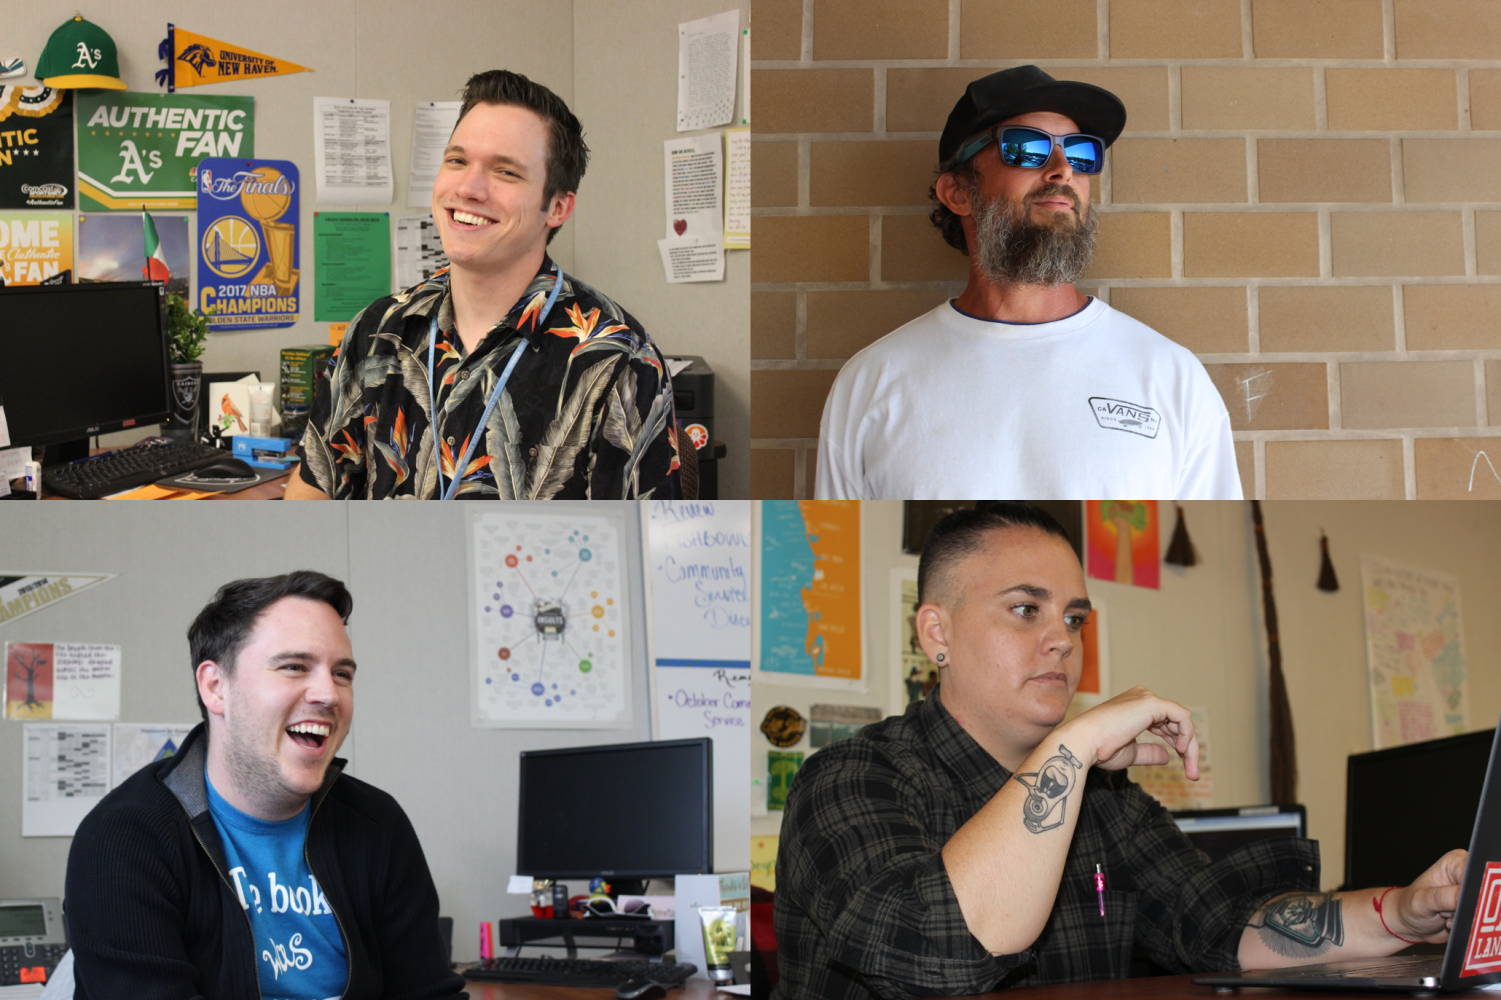 Four Dougherty Valley teachers (top left, Michael Morelli; top right, Jack Sorenson; bottom left, Derek Keith; bottom right, Ashley DeGrano) explain the backgrounds and living significance of the ink on their skin.